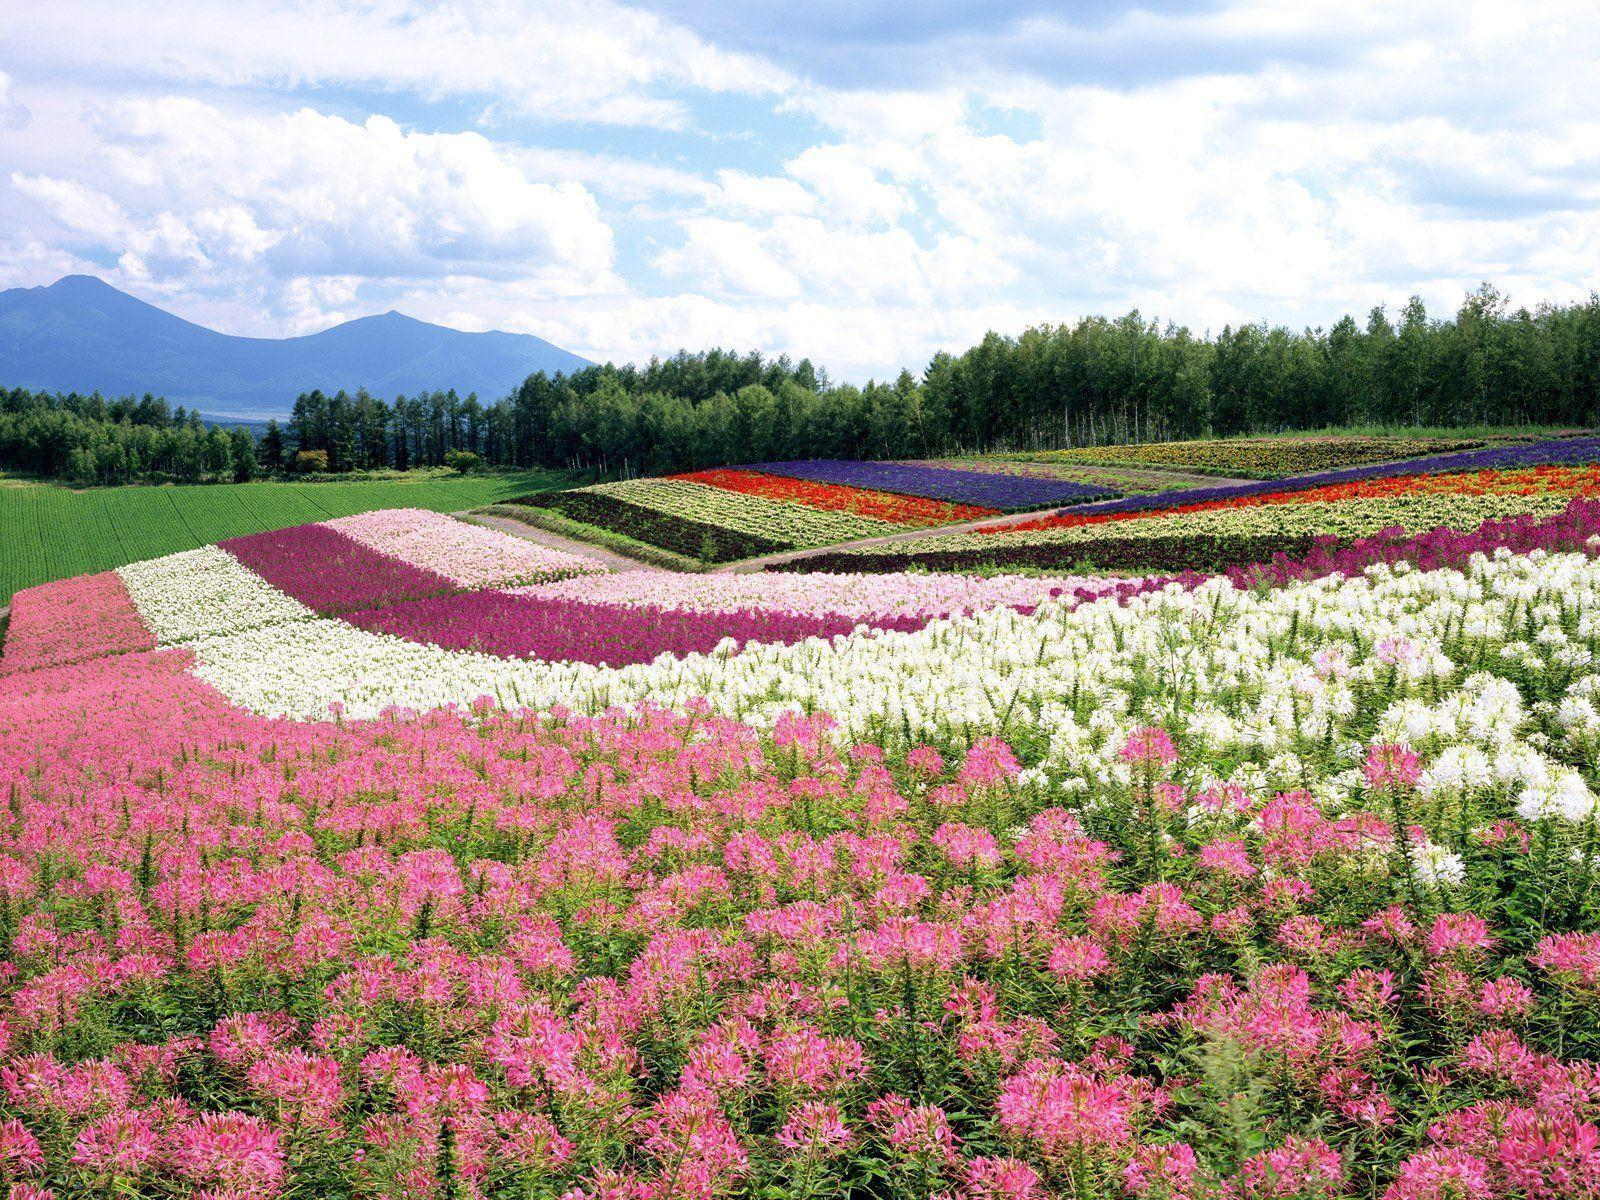 Picture of Flower Garden Wallpapers | Free Desk Wallpapers